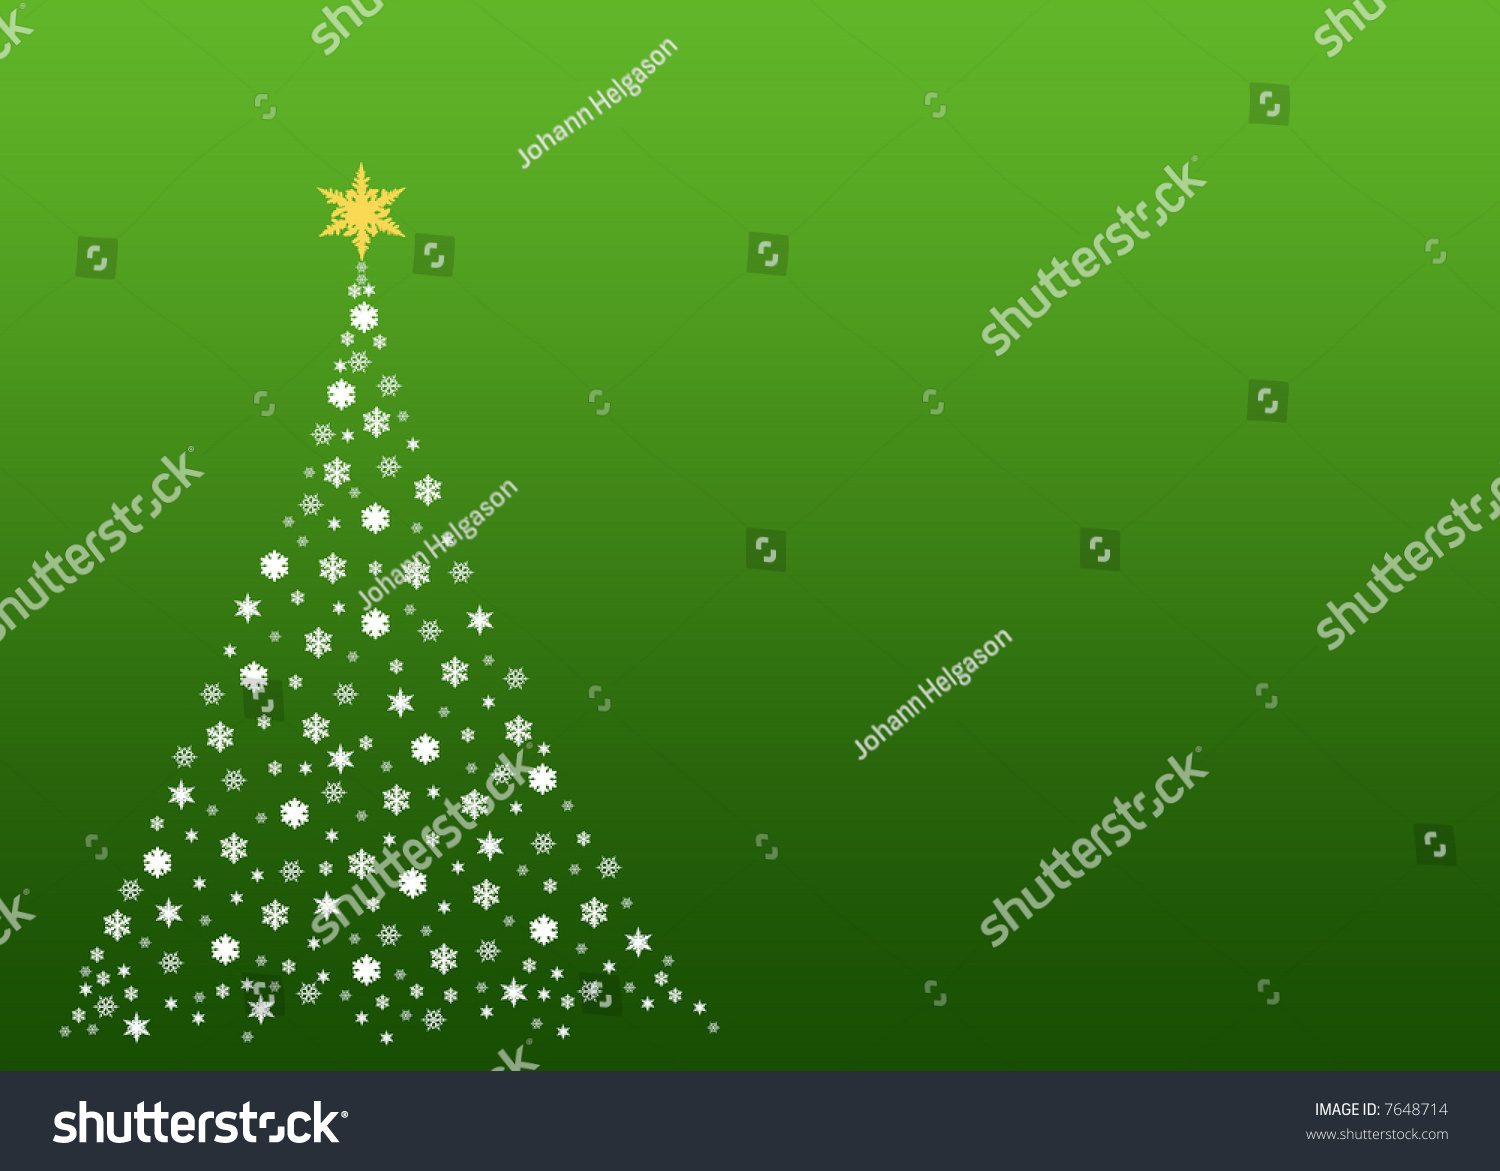 Illustration christmas tree formed by white stock illustration an illustration of a christmas tree formed by white symbols made out of real snowflakes biocorpaavc Gallery